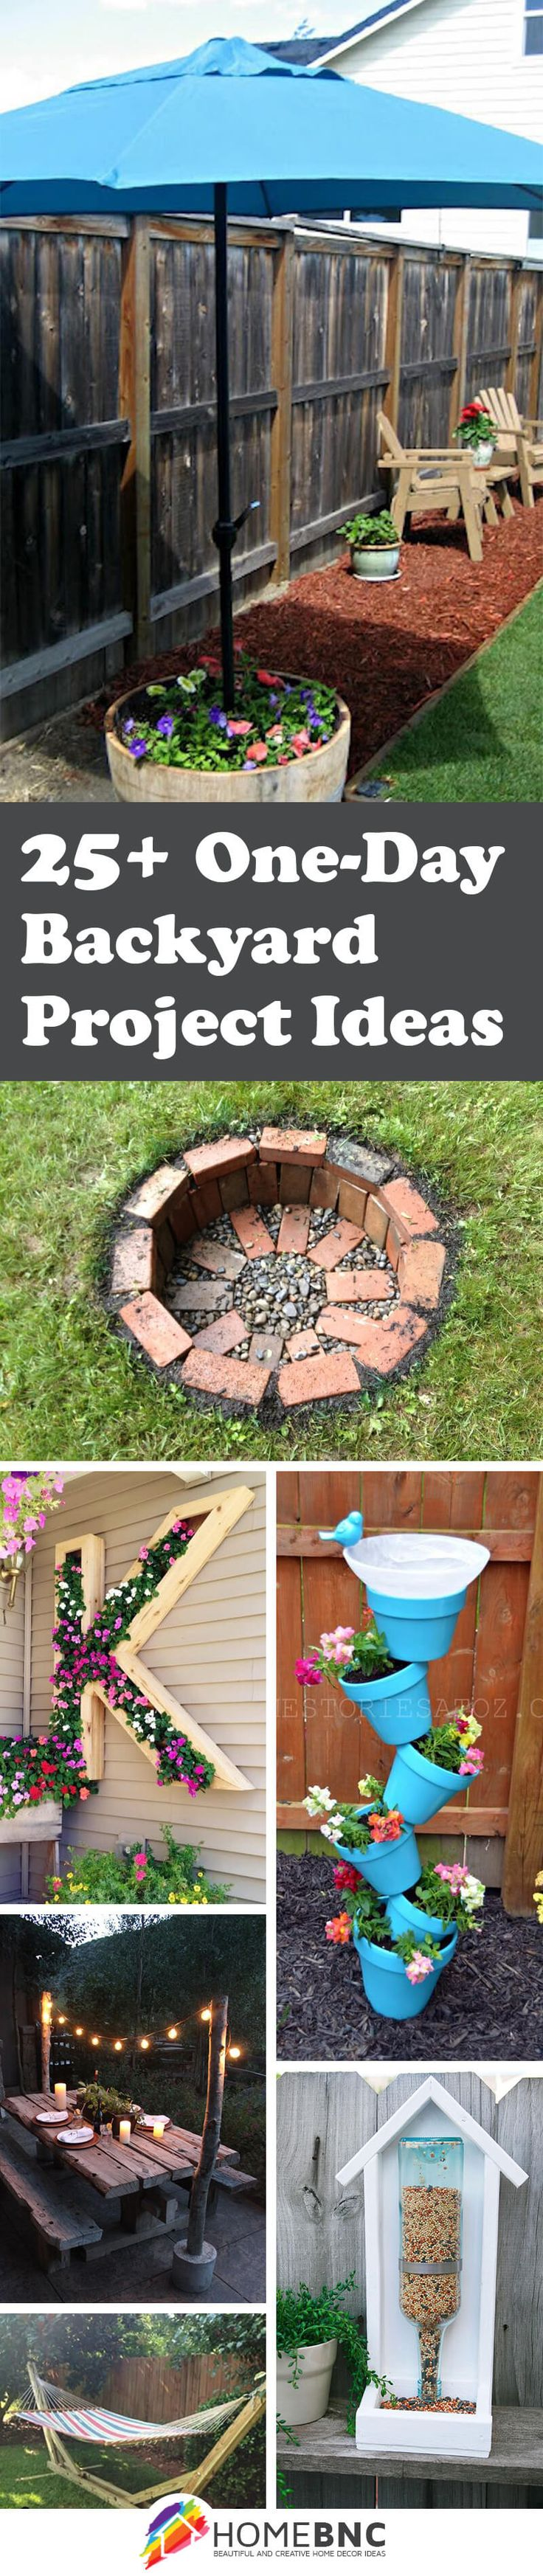 Don t forget that decorating the garden you must think about nature - Best 25 Backyard Decorations Ideas On Pinterest Diy Yard Decor Country Homes And Outdoor Decorations